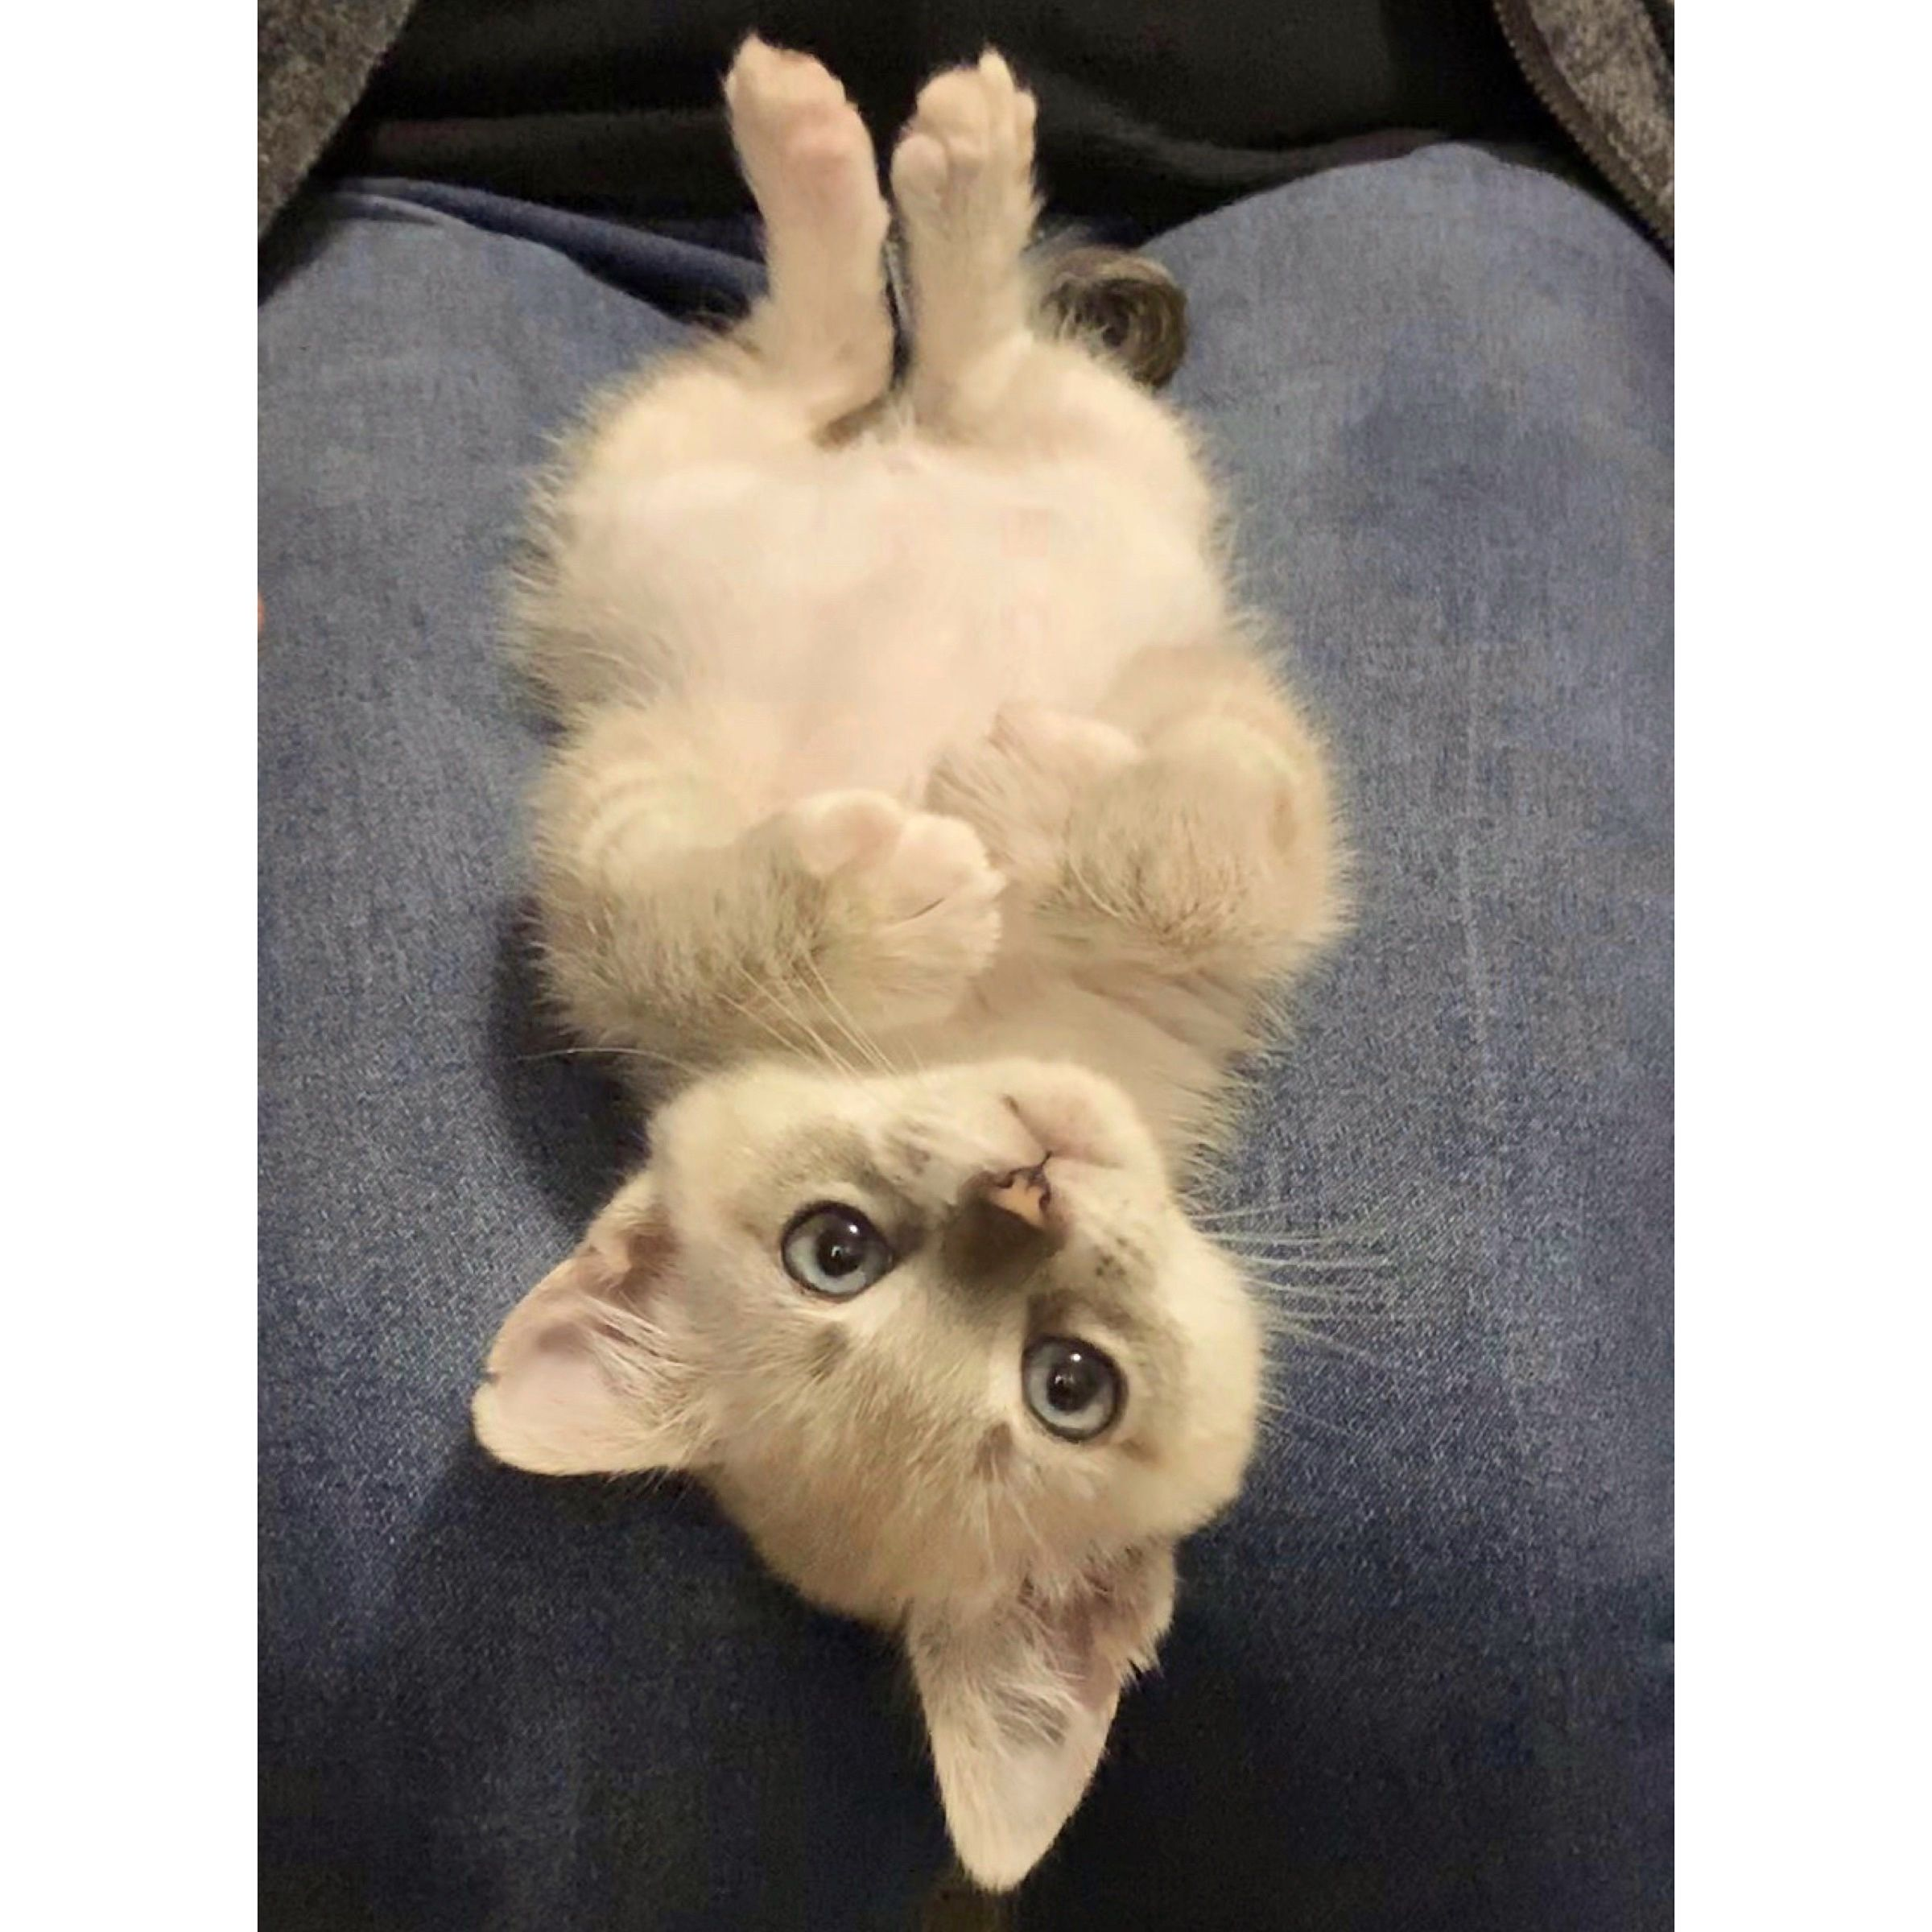 White Seal Cream Lilac Tabby Point Siamese Kitten Cat Laying Upside Down Blue Eyes Pretty Cats Fluffy Kittens Siamese Cats Blue Point